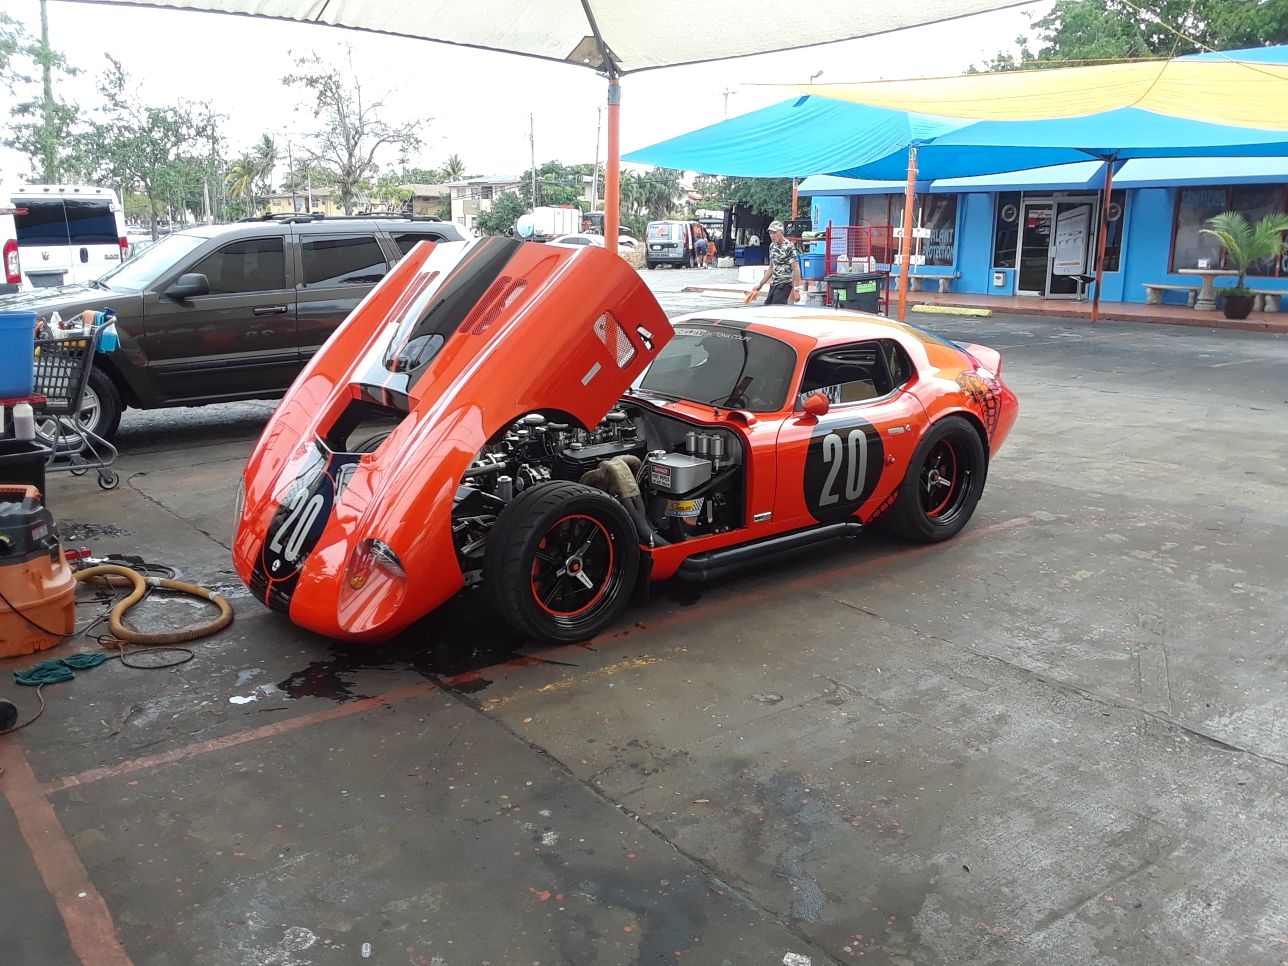 Professional detailing of anique cars in Miami